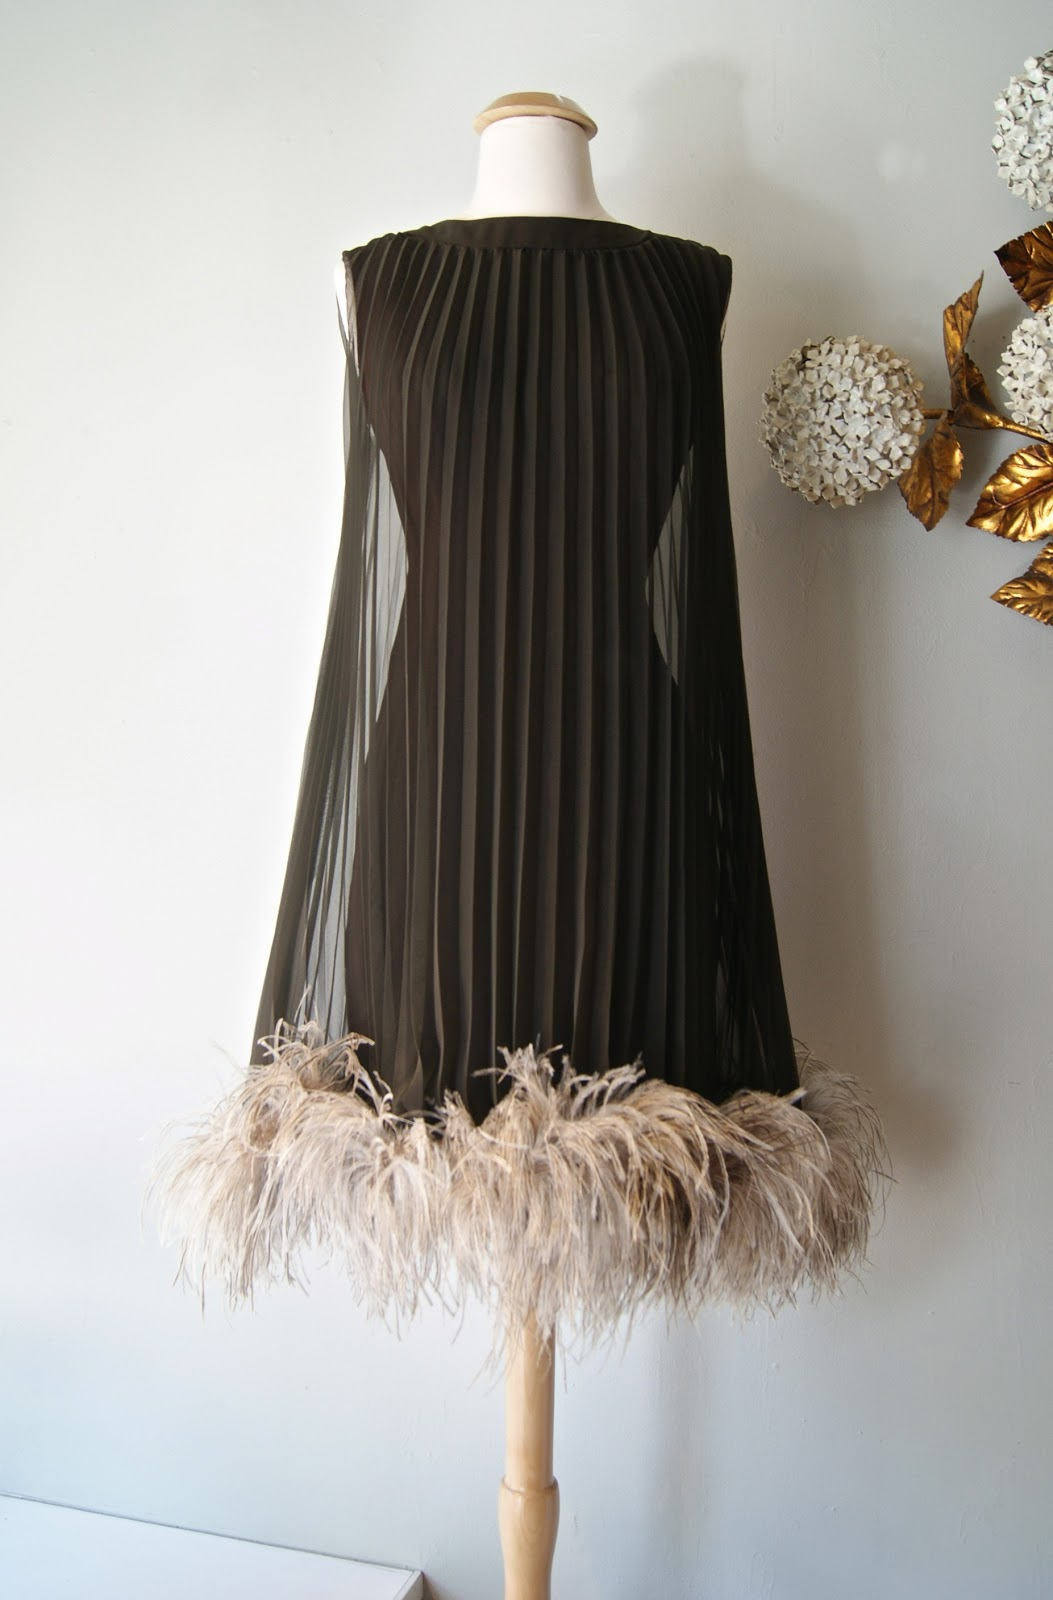 xtabay vintage clothing boutique portland oregon fabulous finds